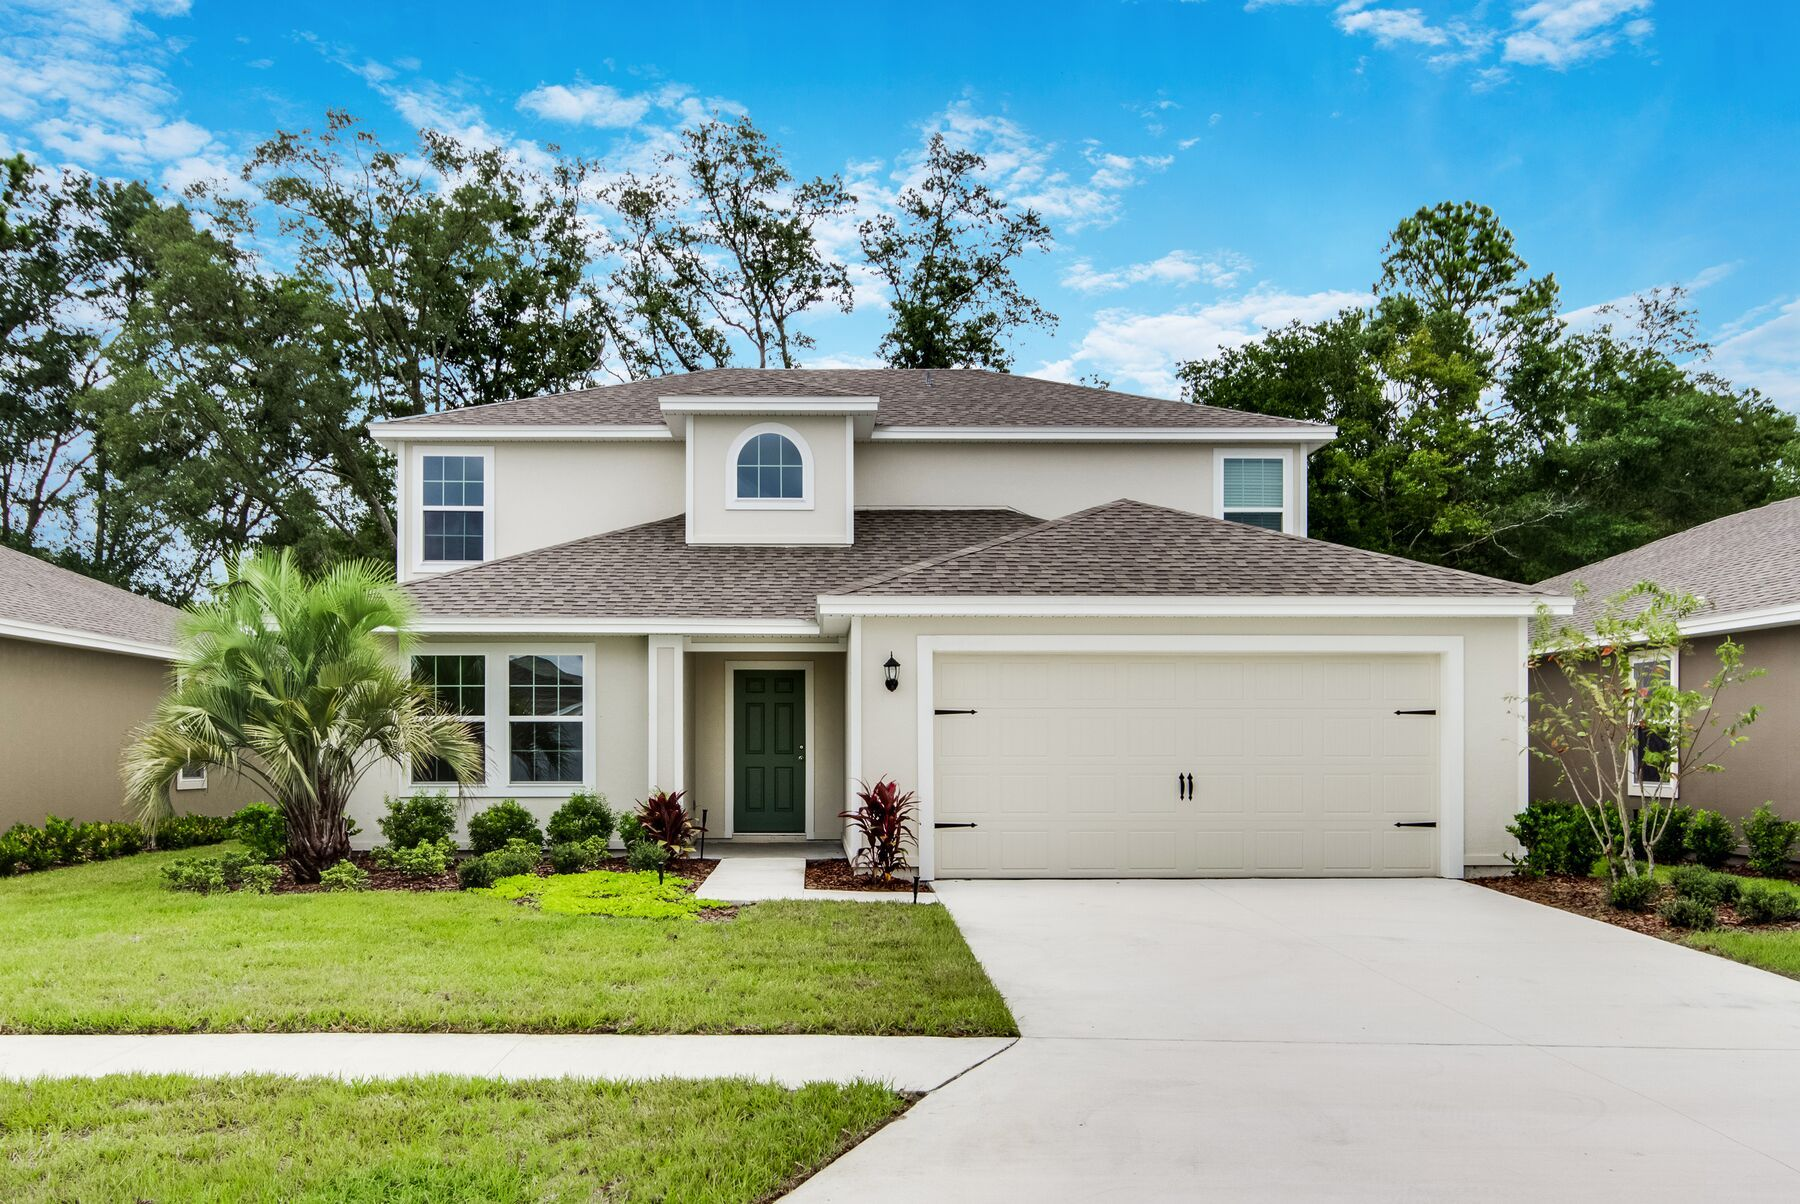 The Four Winds by LGI Homes